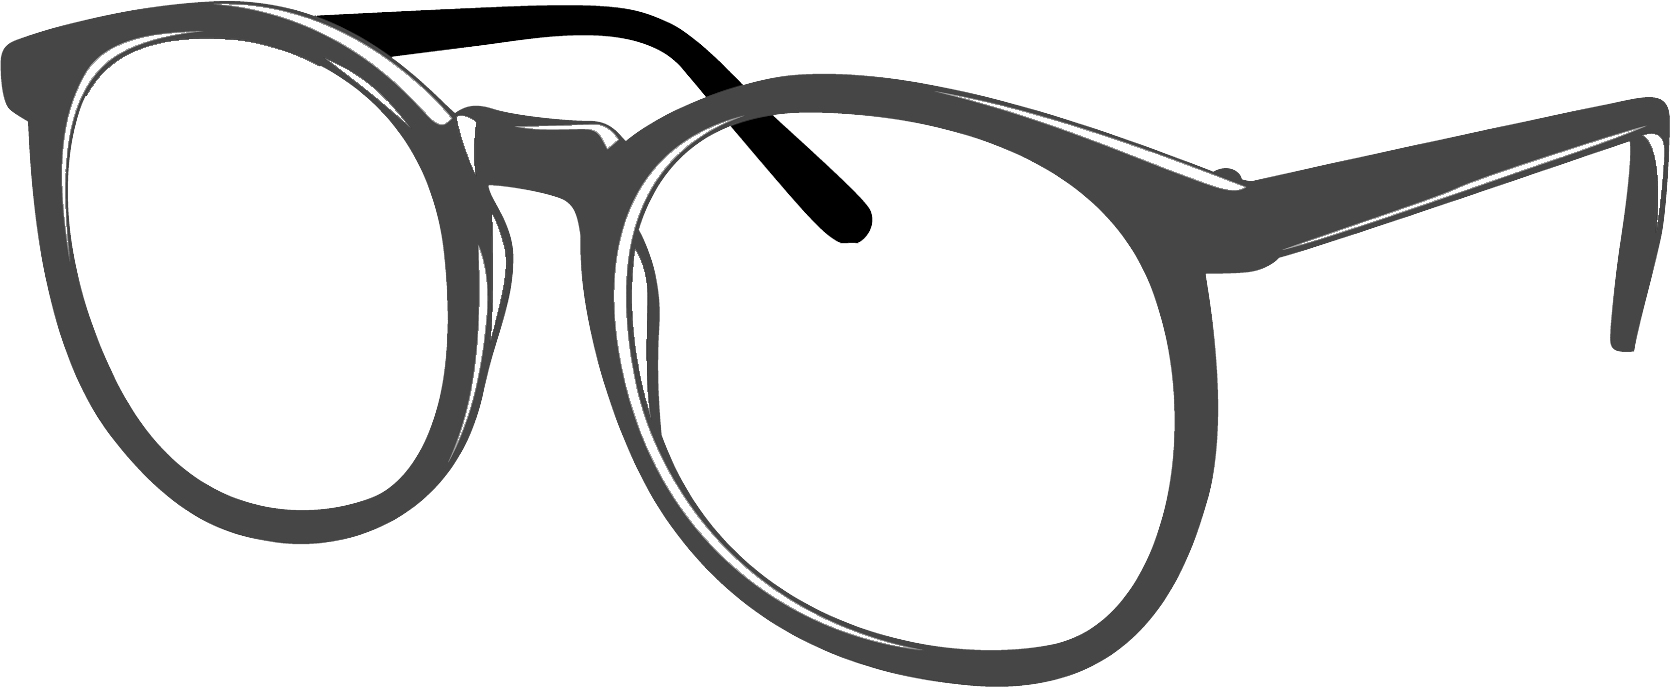 Eyeglasses Frame Images : The Visual Slide Revolution: Transforming Overloaded Text ...